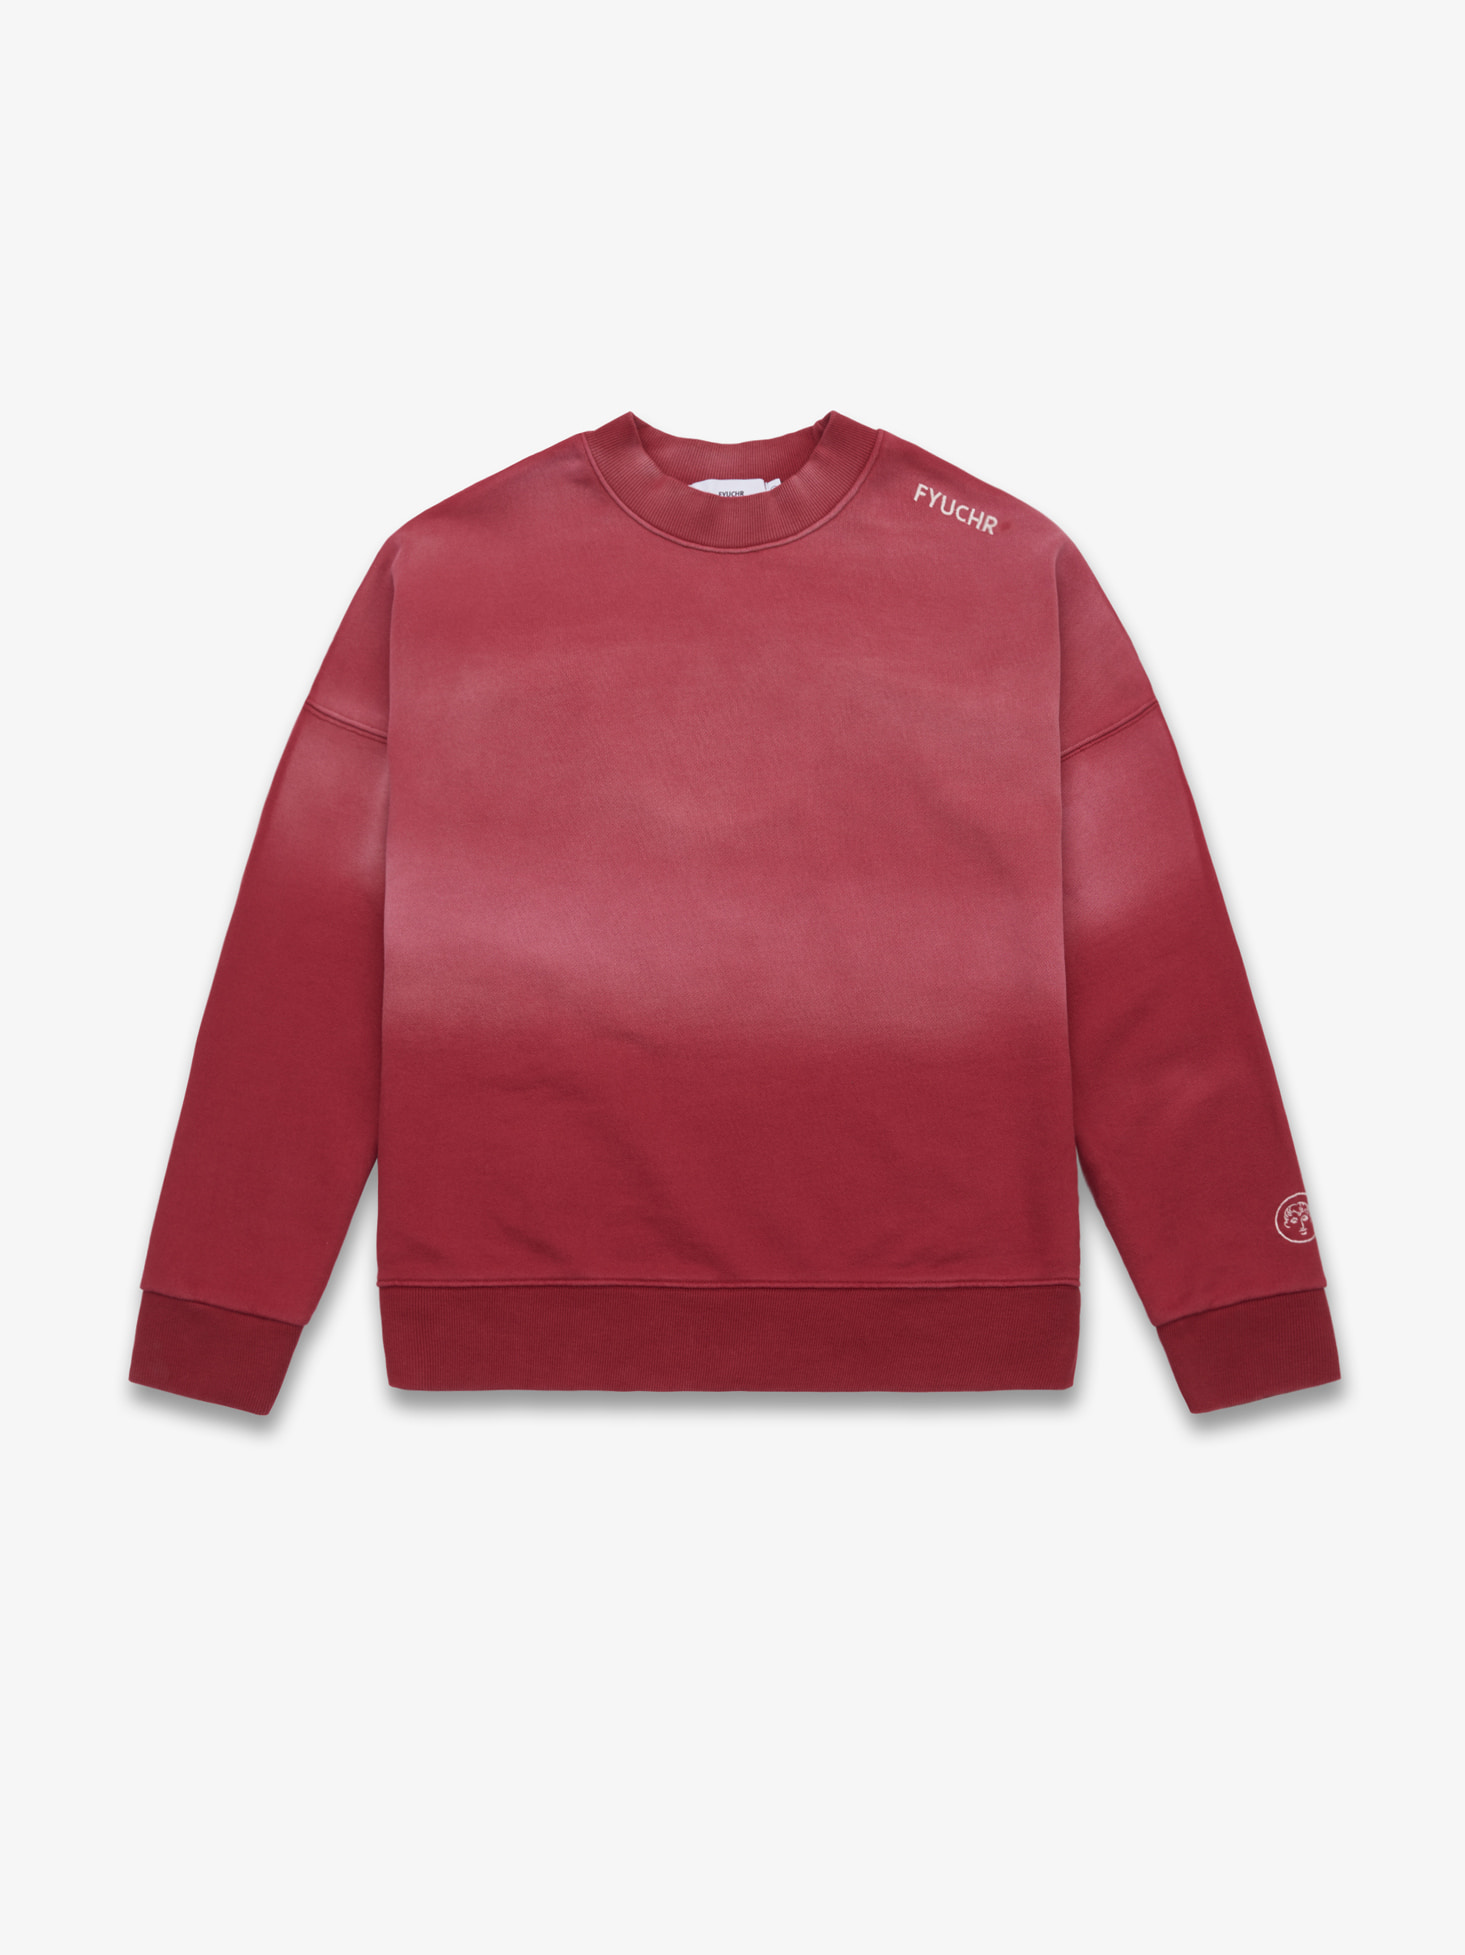 COLOR GRADIENT CREWNECK SHIRTS (RED) 시즌오프 50% 특별할인 81,000원 ->